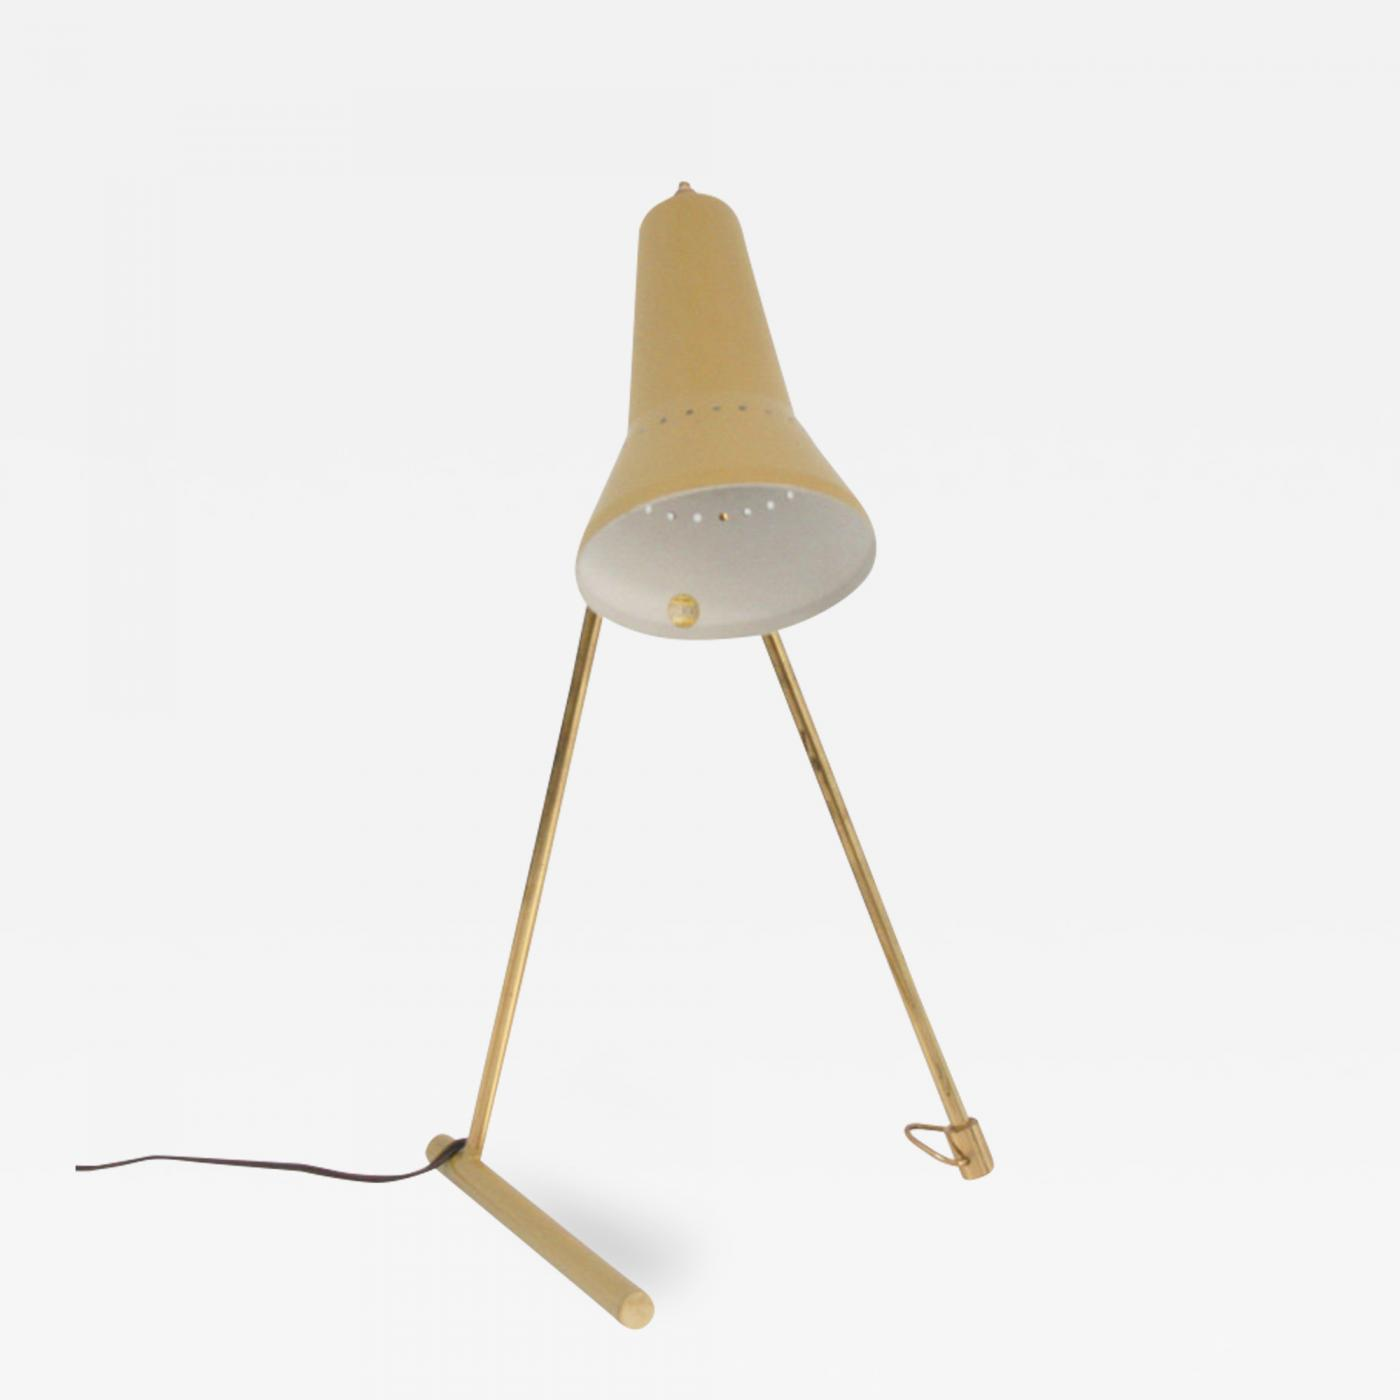 Stilnovo Vintage Italian Brass Table Lamp With Yellow Shade By